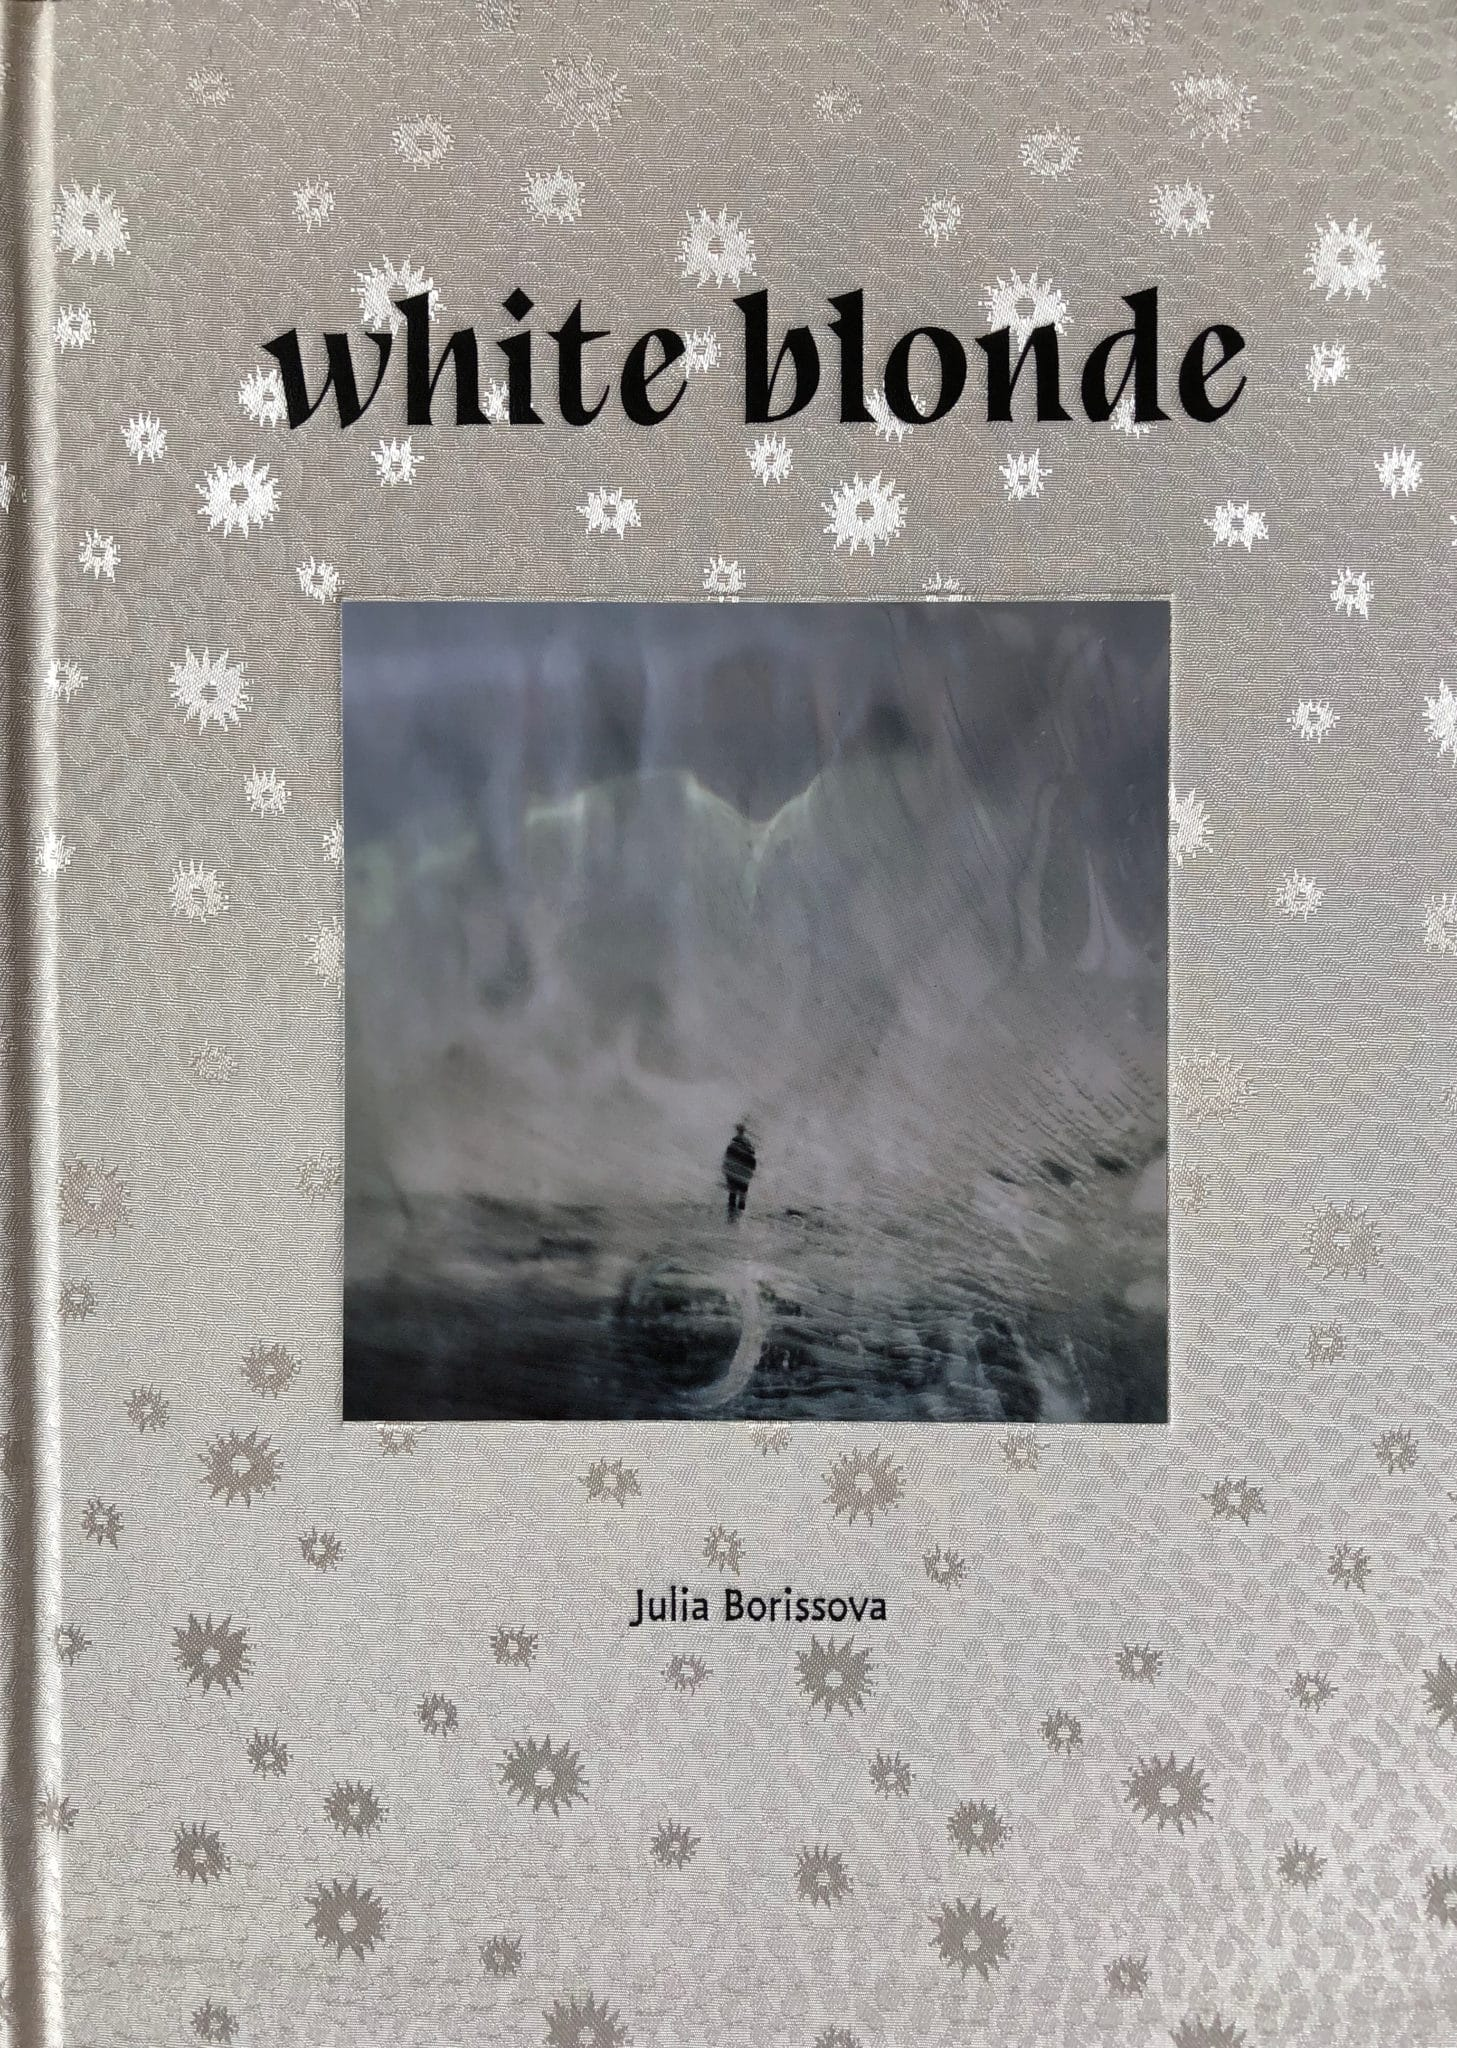 «White Blonde» BeSpoke Collection, N°10 by the Russian artist Julia Borissova, (Limited Edition 250 Copies + signed C print) Editions Bessard